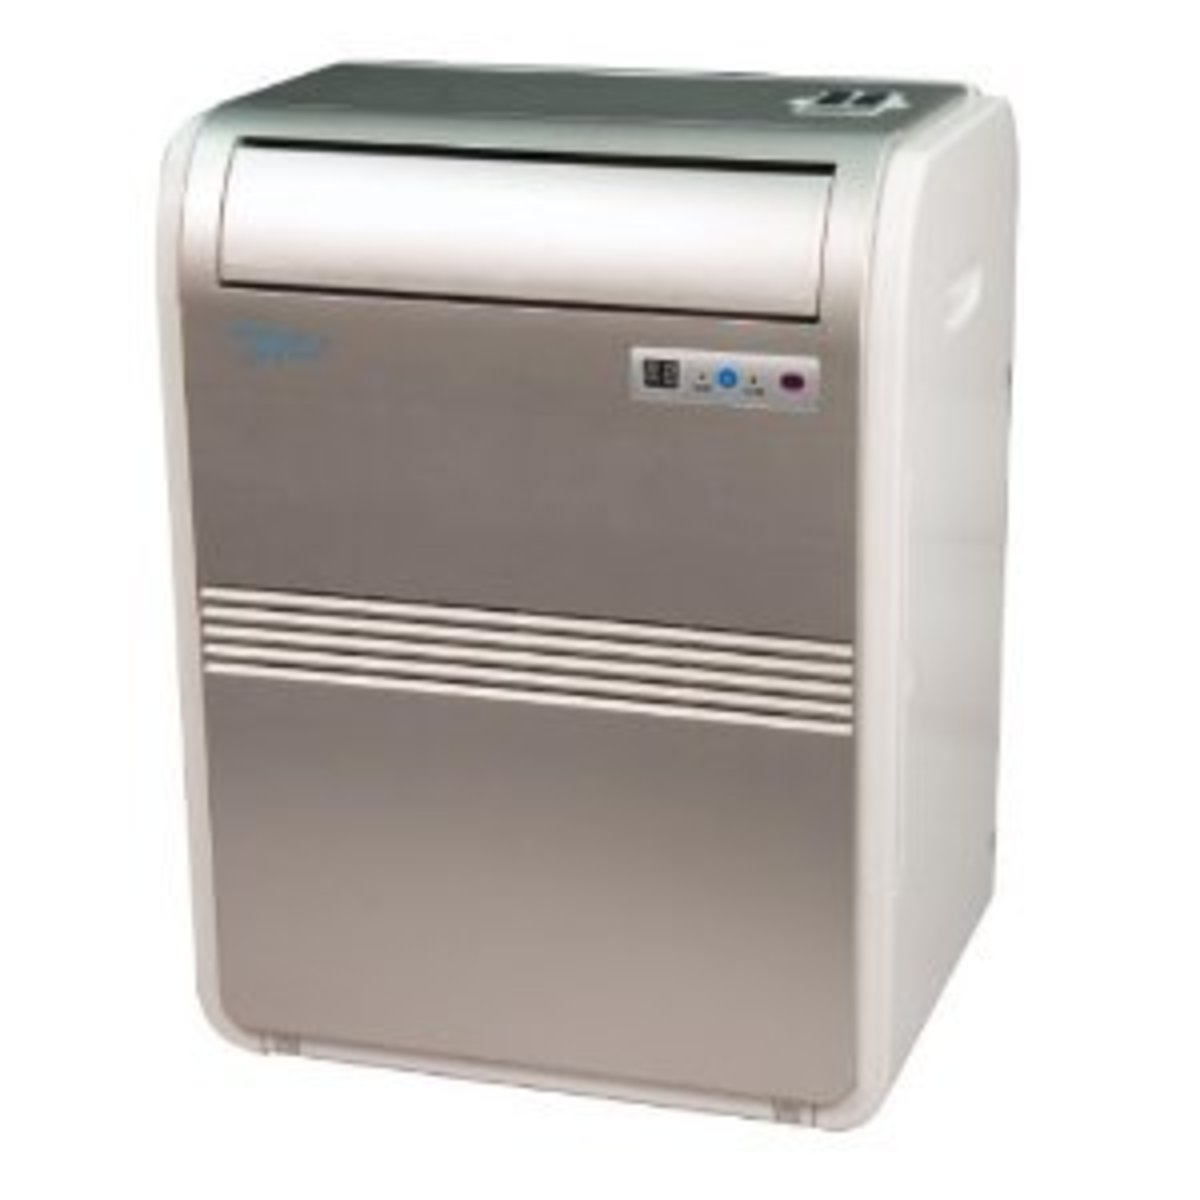 Haier Portable Air Conditioner, 8000 BTUs, CPRB08XCJ